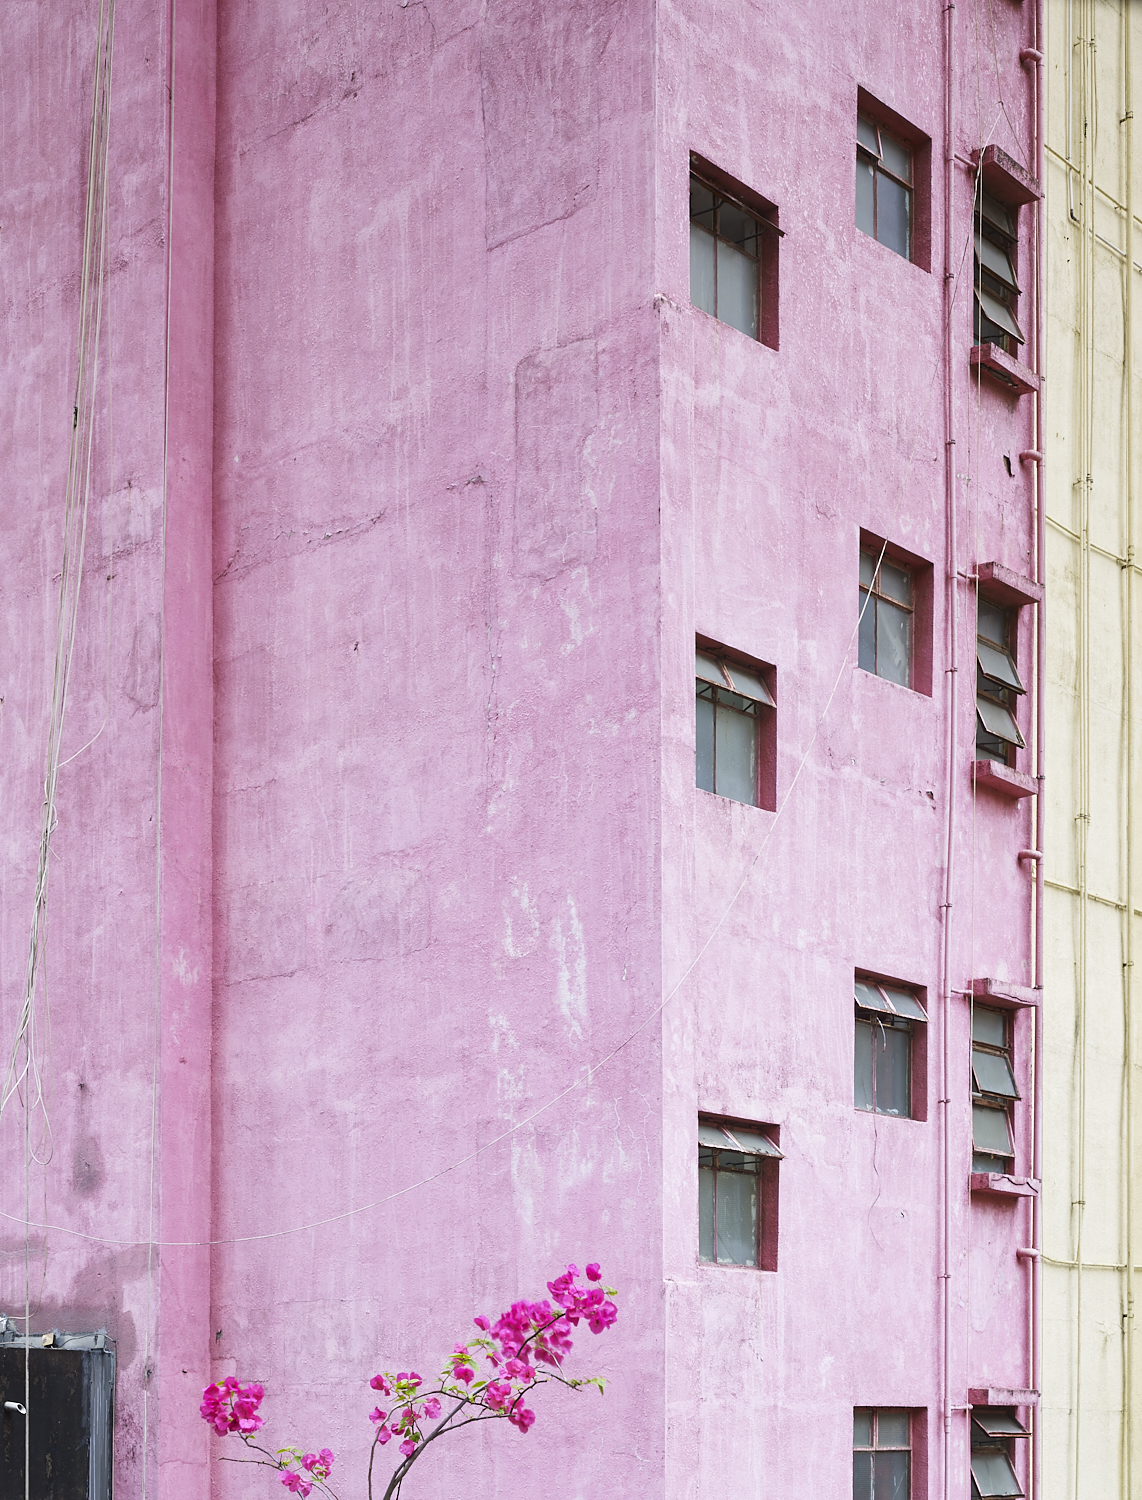 Flower and building, Central Hong Kong, 2017